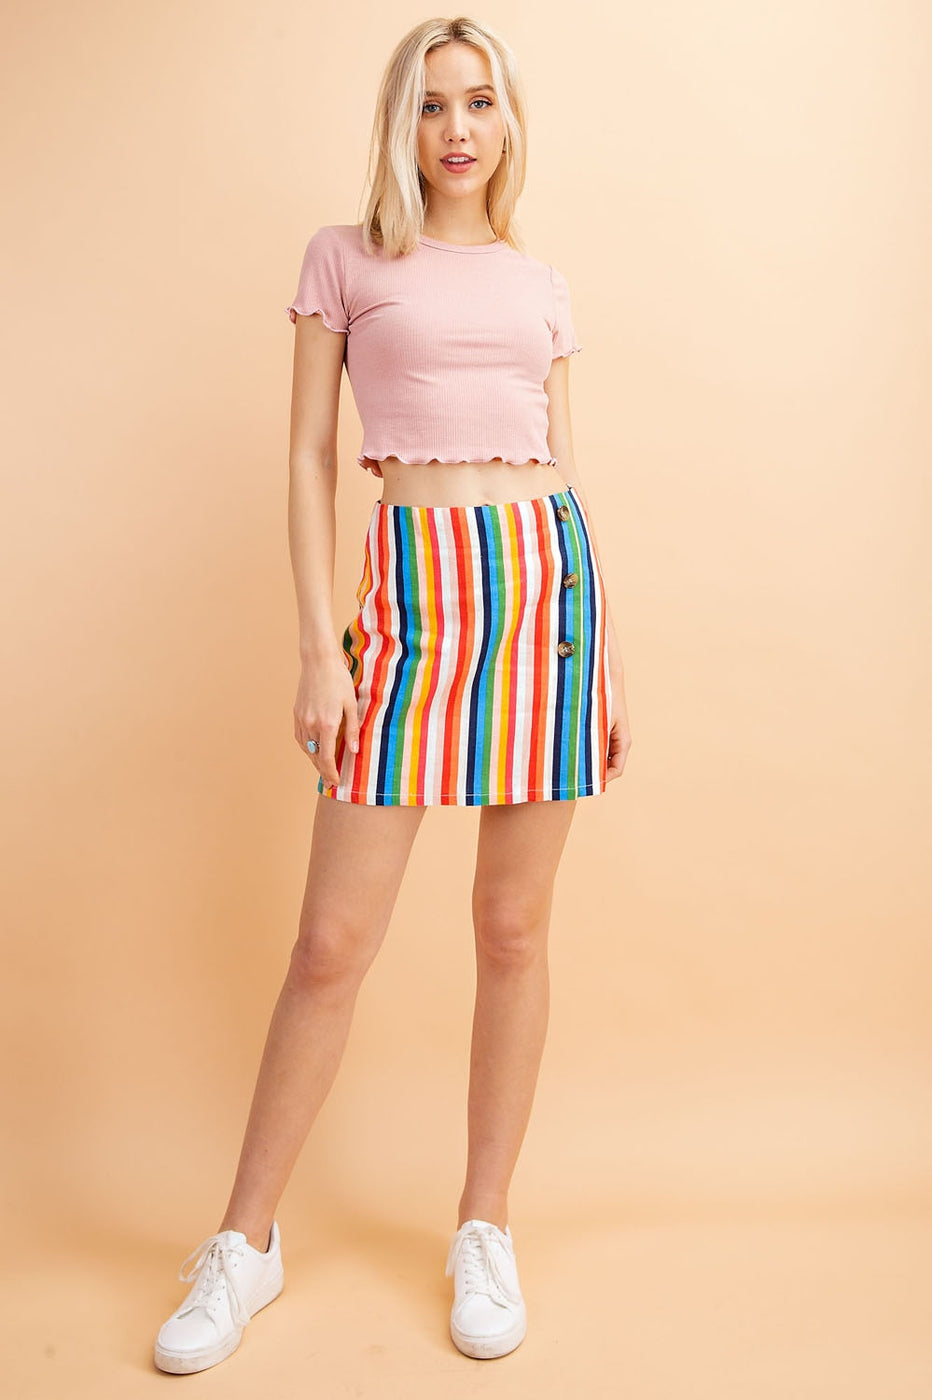 Short Sleeve Crop Top - Siin Bees